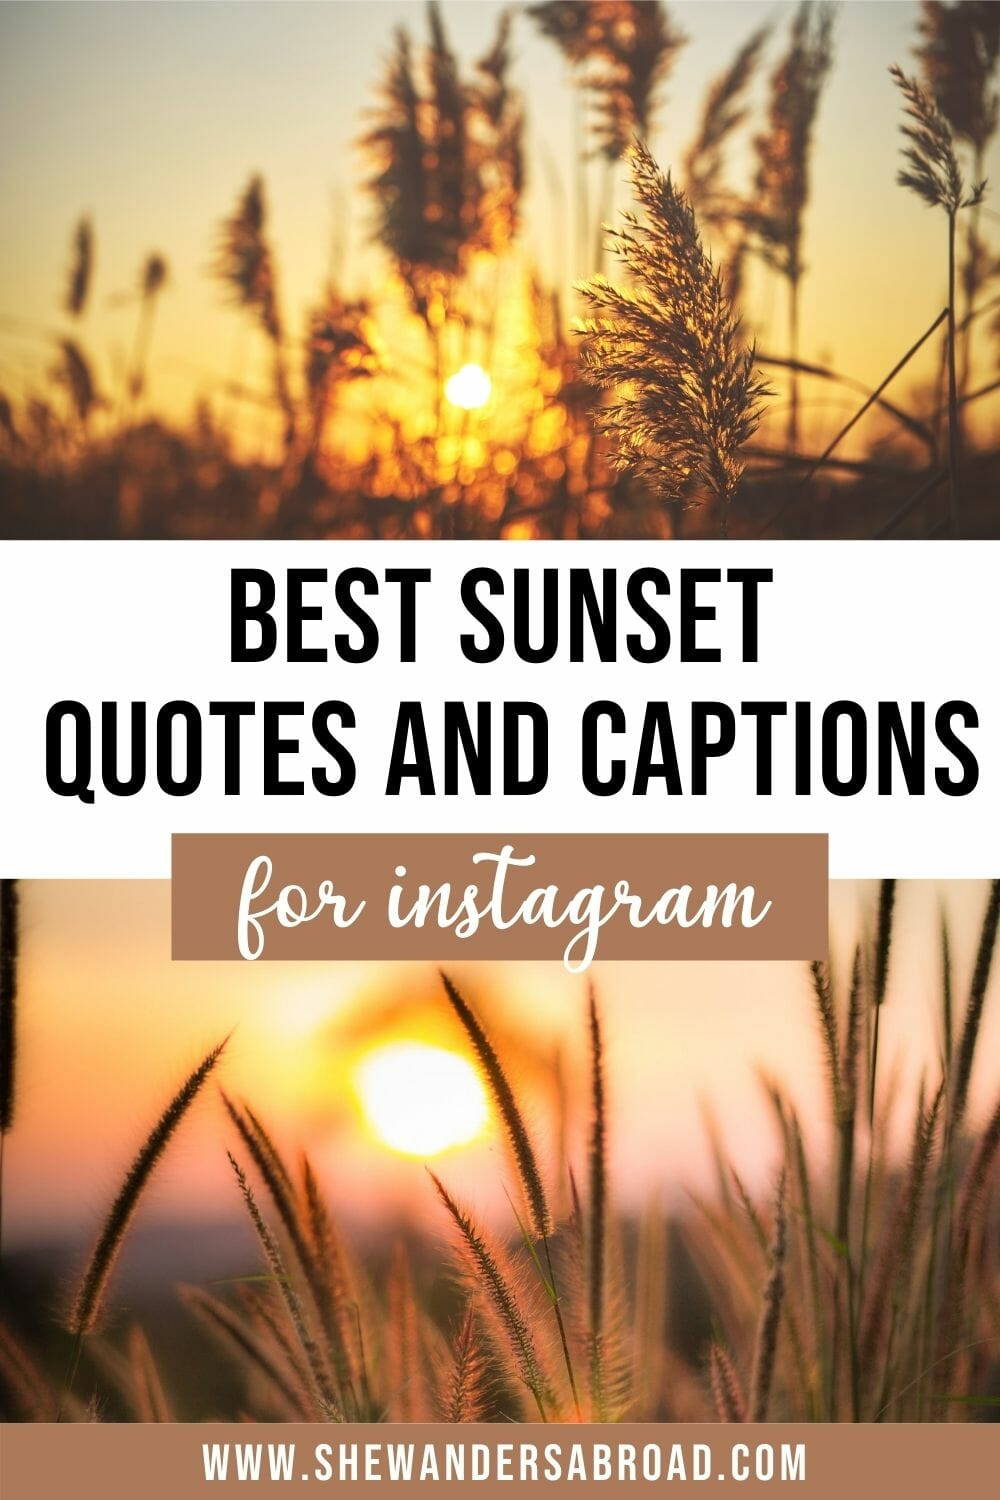 160 Best Sunset Captions for Instagram (Quotes, Puns and More!)